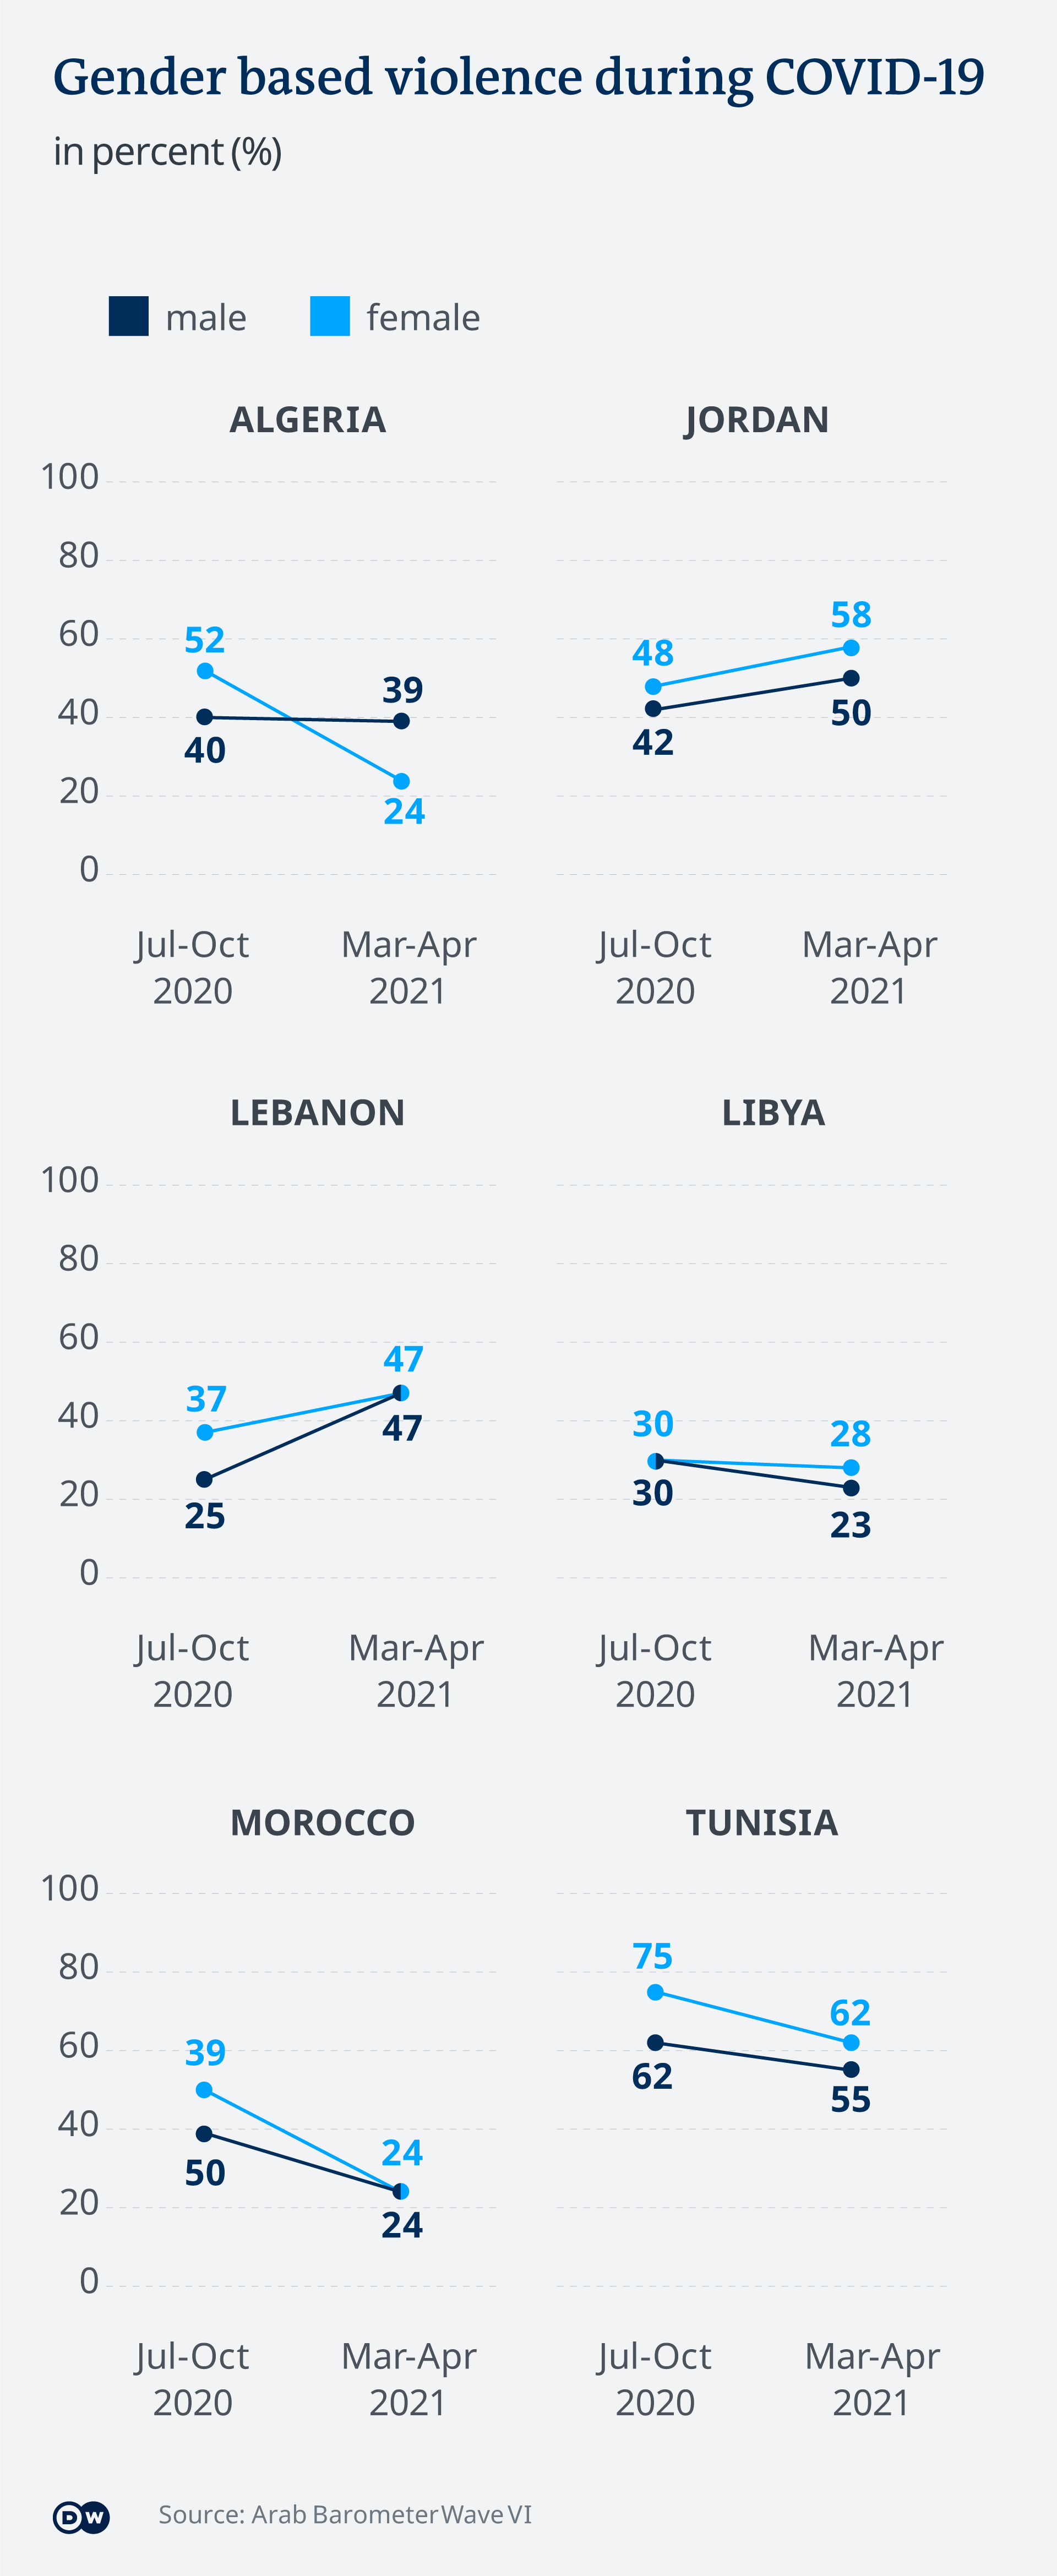 The Arab Barometer's latest survey shows an uptick in domestic violence in Jordan and Lebanon